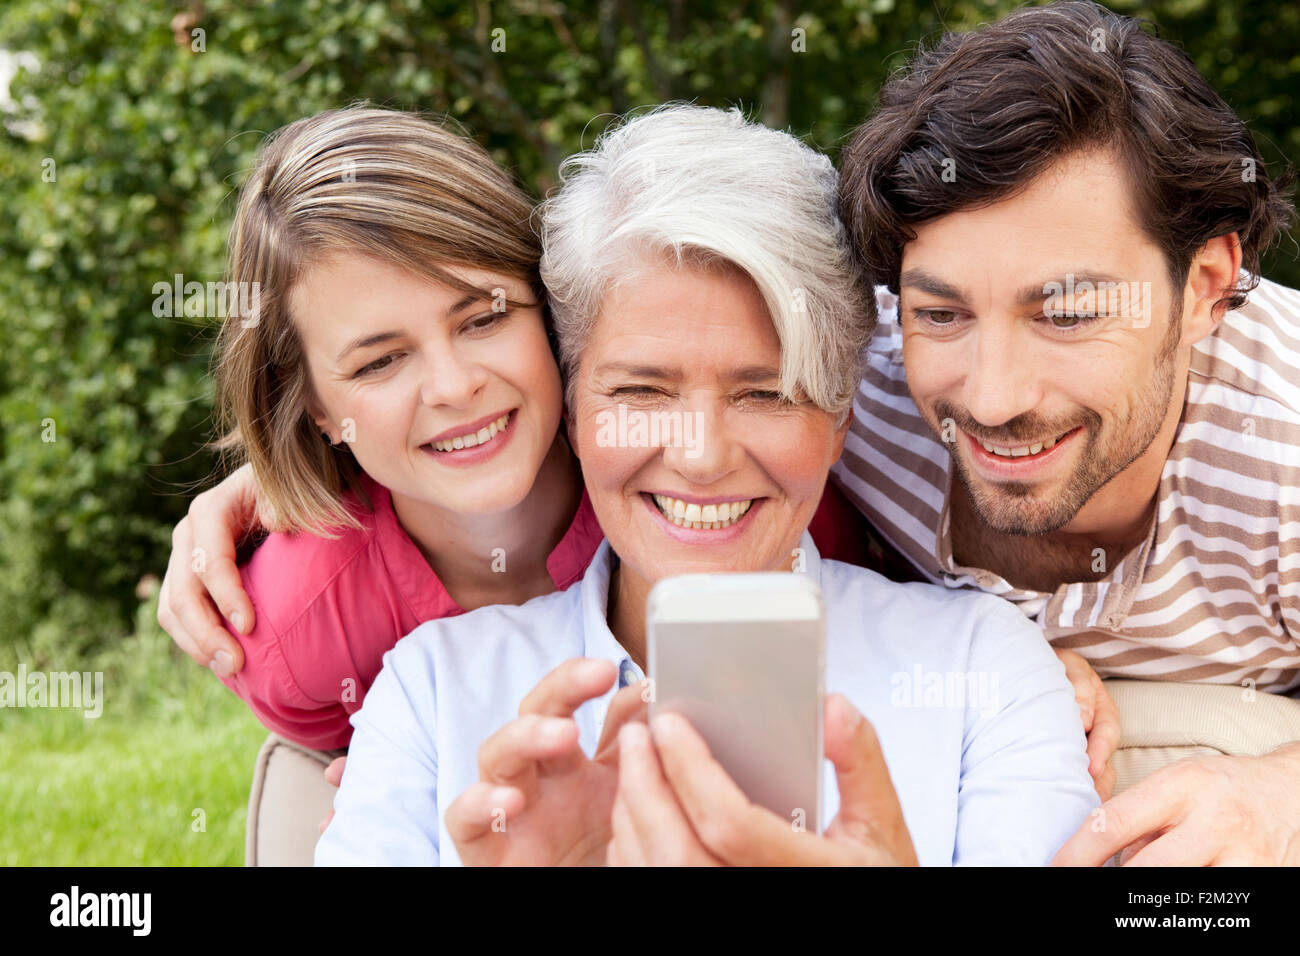 Mother with adult children looking at cell phone outdoors - Stock Image